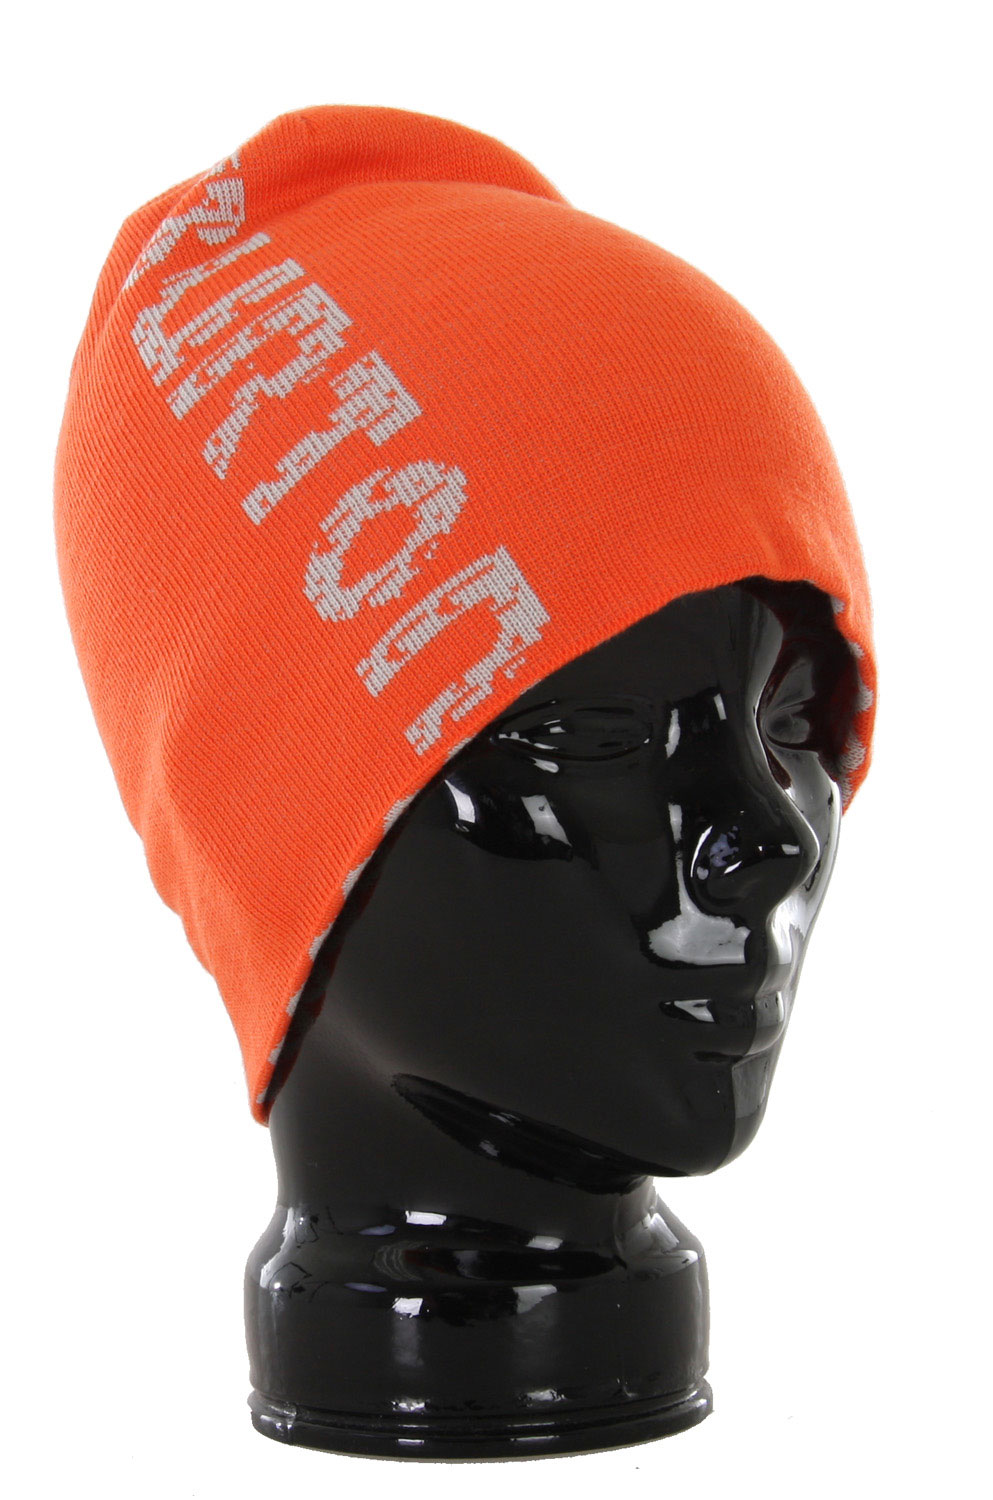 Snowboard Remember when having a hat on wasn't too cool? Well times have changed and so have the hats! Take a look at this Burton Proclaim beanie. It looks so good you're going to want to it all year. Made in a 100% acrylic fabric it is going to keep your head and ears warm while it's on your head. Get double usage out of this reversible jacquard beanie. The logo pattern is on one side of this skully fit made beanie. Yeah, you may want to get two of these!Key Features of the Burton Proclaim Beanie: 100% Acrylic Reversible Jacquard Beanie Vertical Burton Word Mark with Allover Process Logo Pattern on Reverse Skully Fit - $11.87